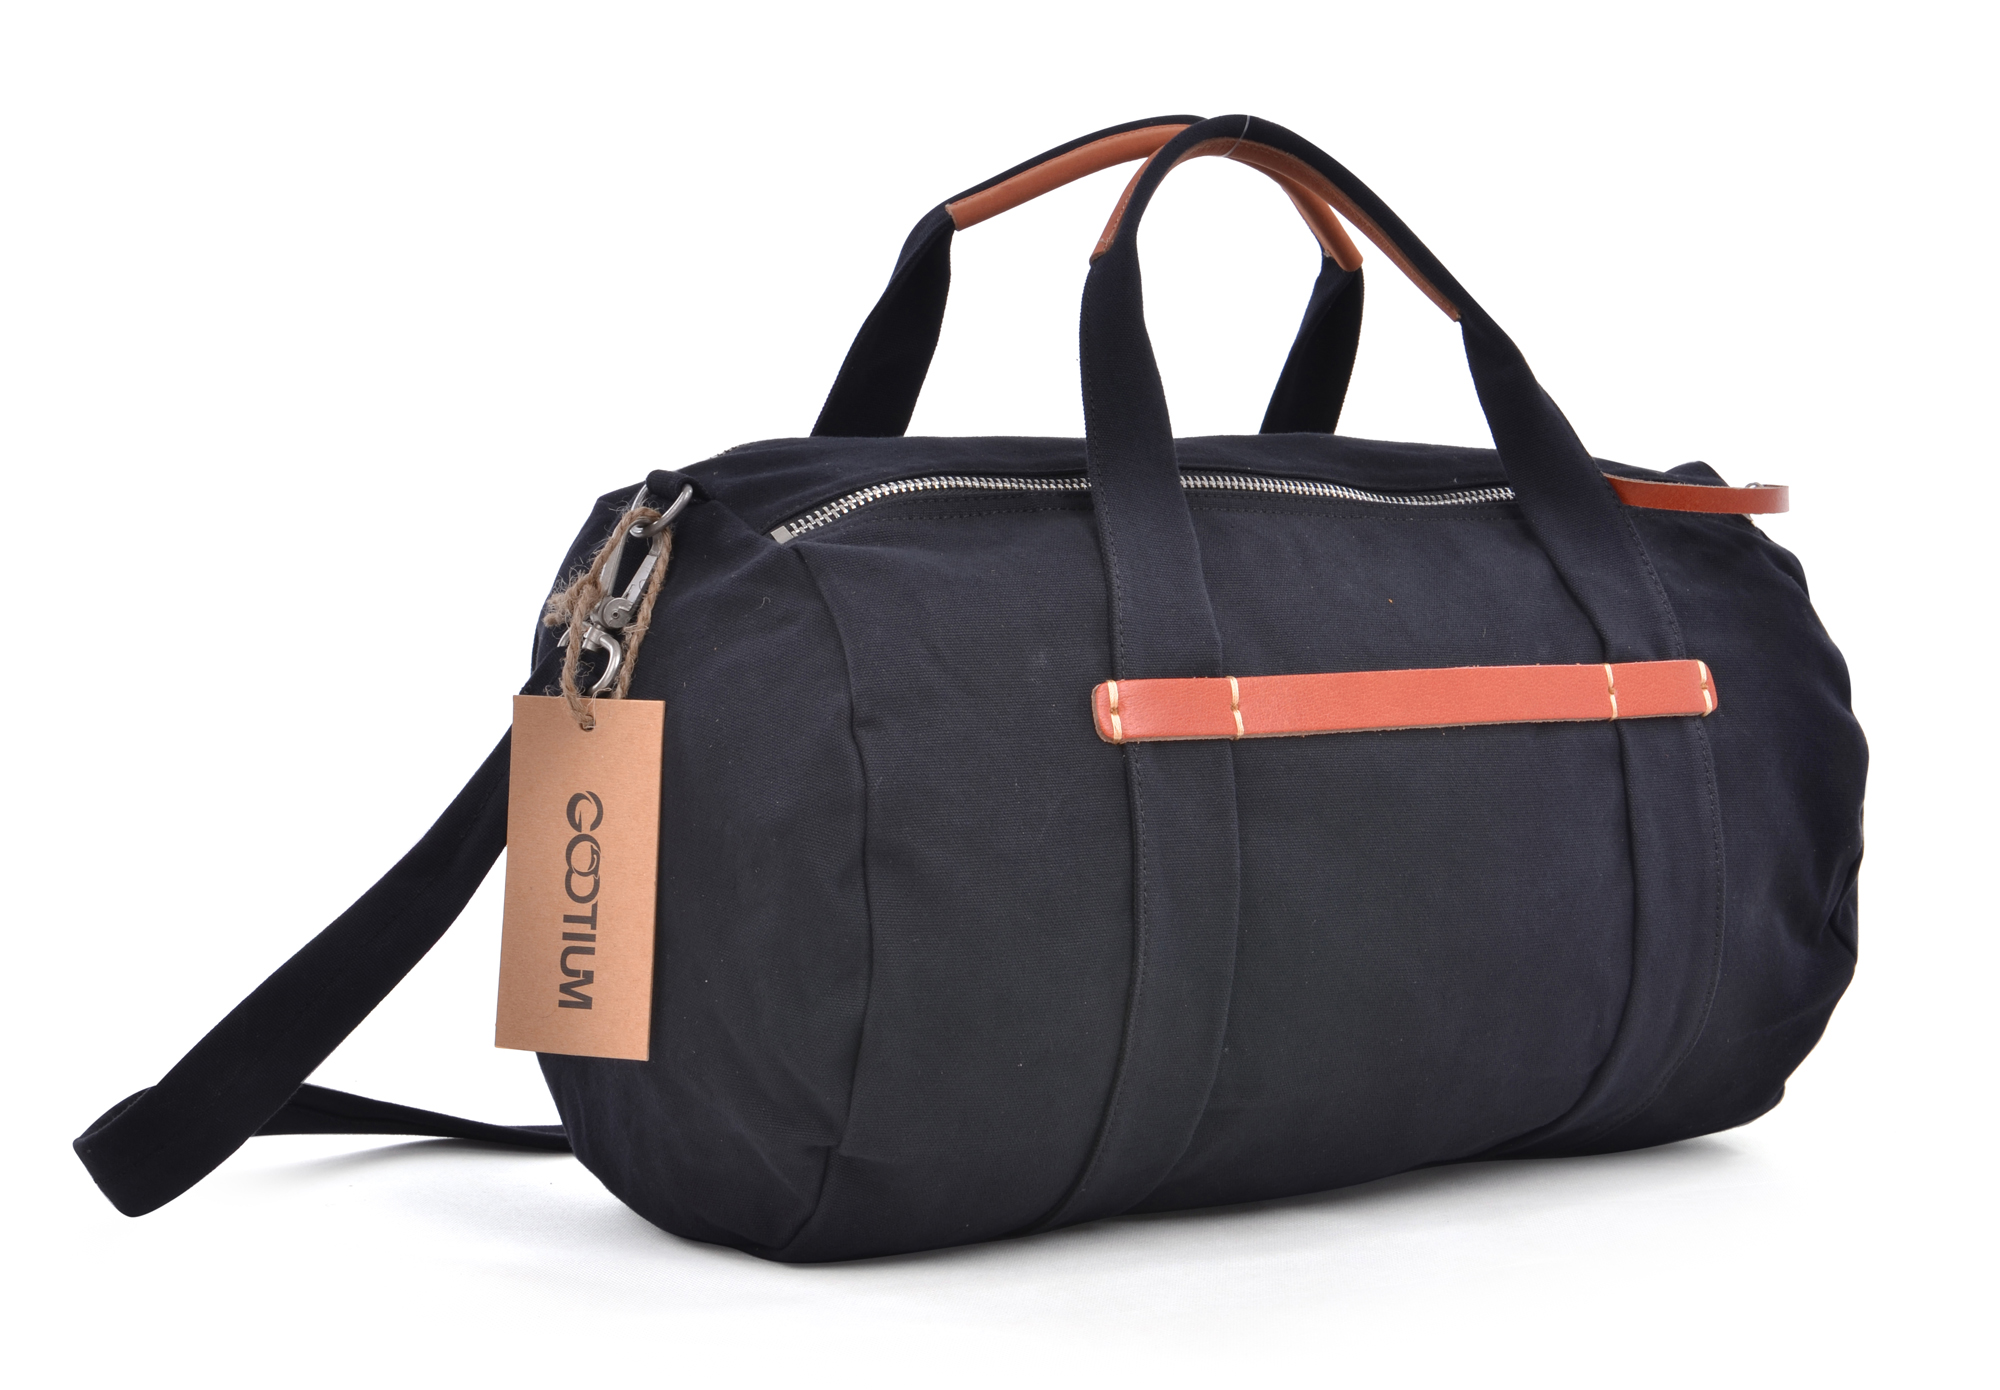 Gootium Canvas Leather Weekend Cross Body Duffle Bag Sports Gym ...